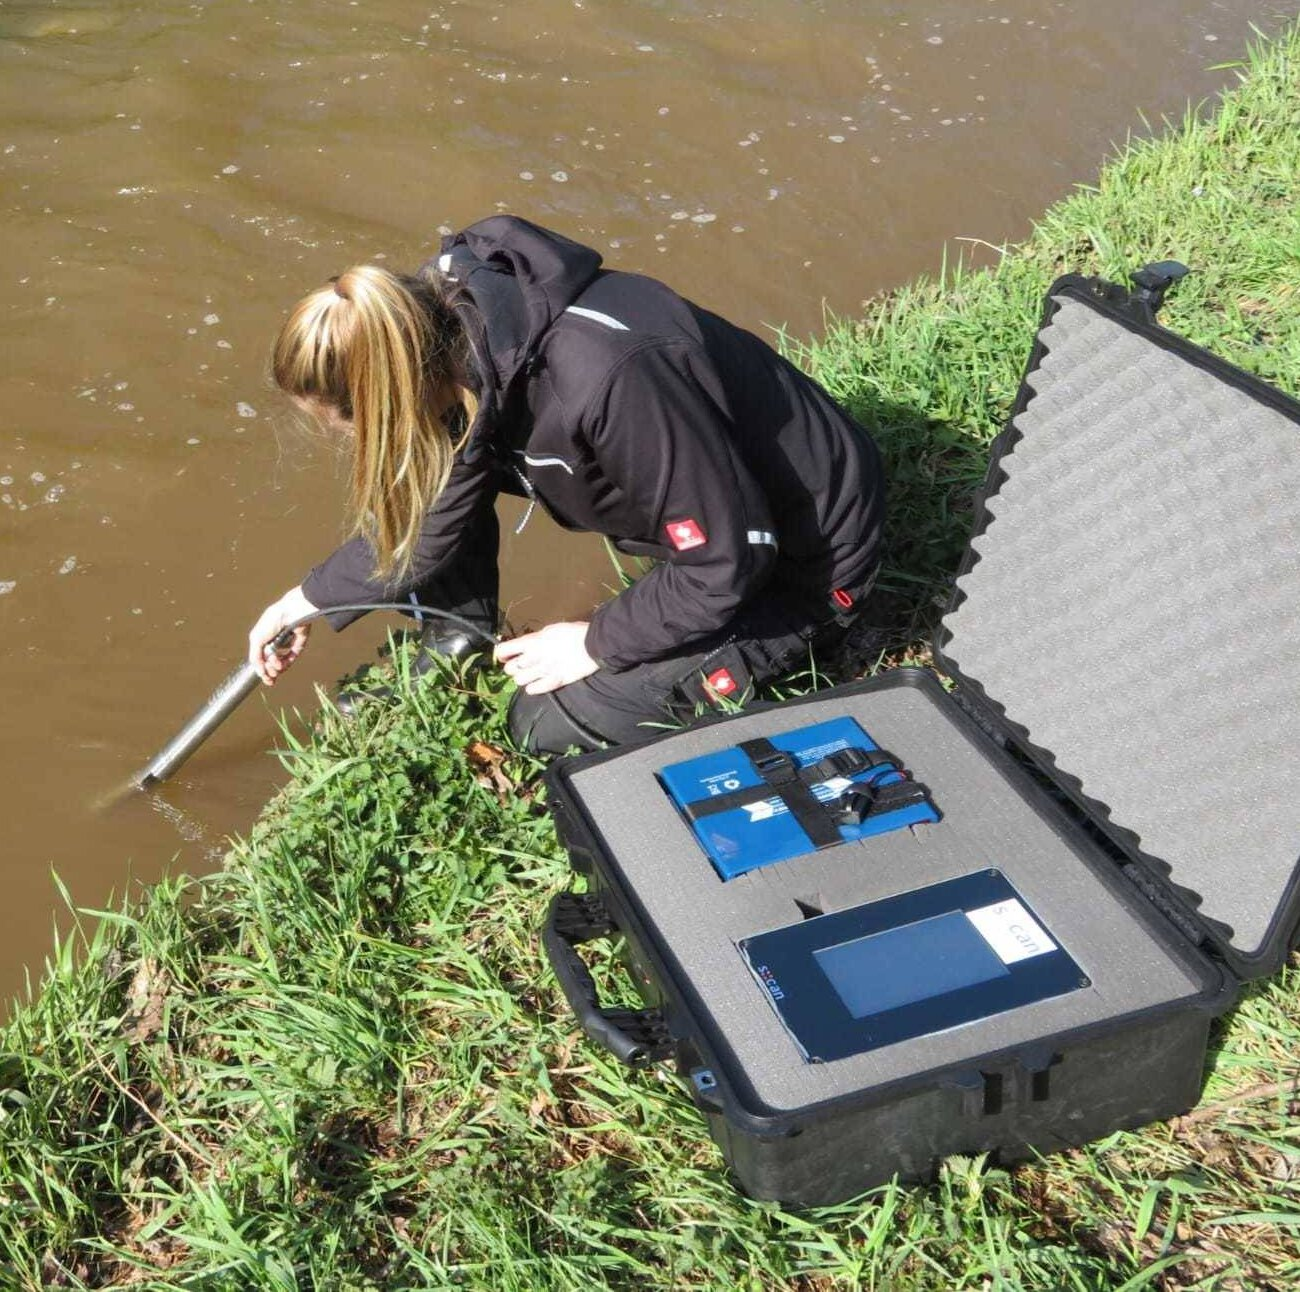 Gallery image 0 - Sensor for measuring waterquality